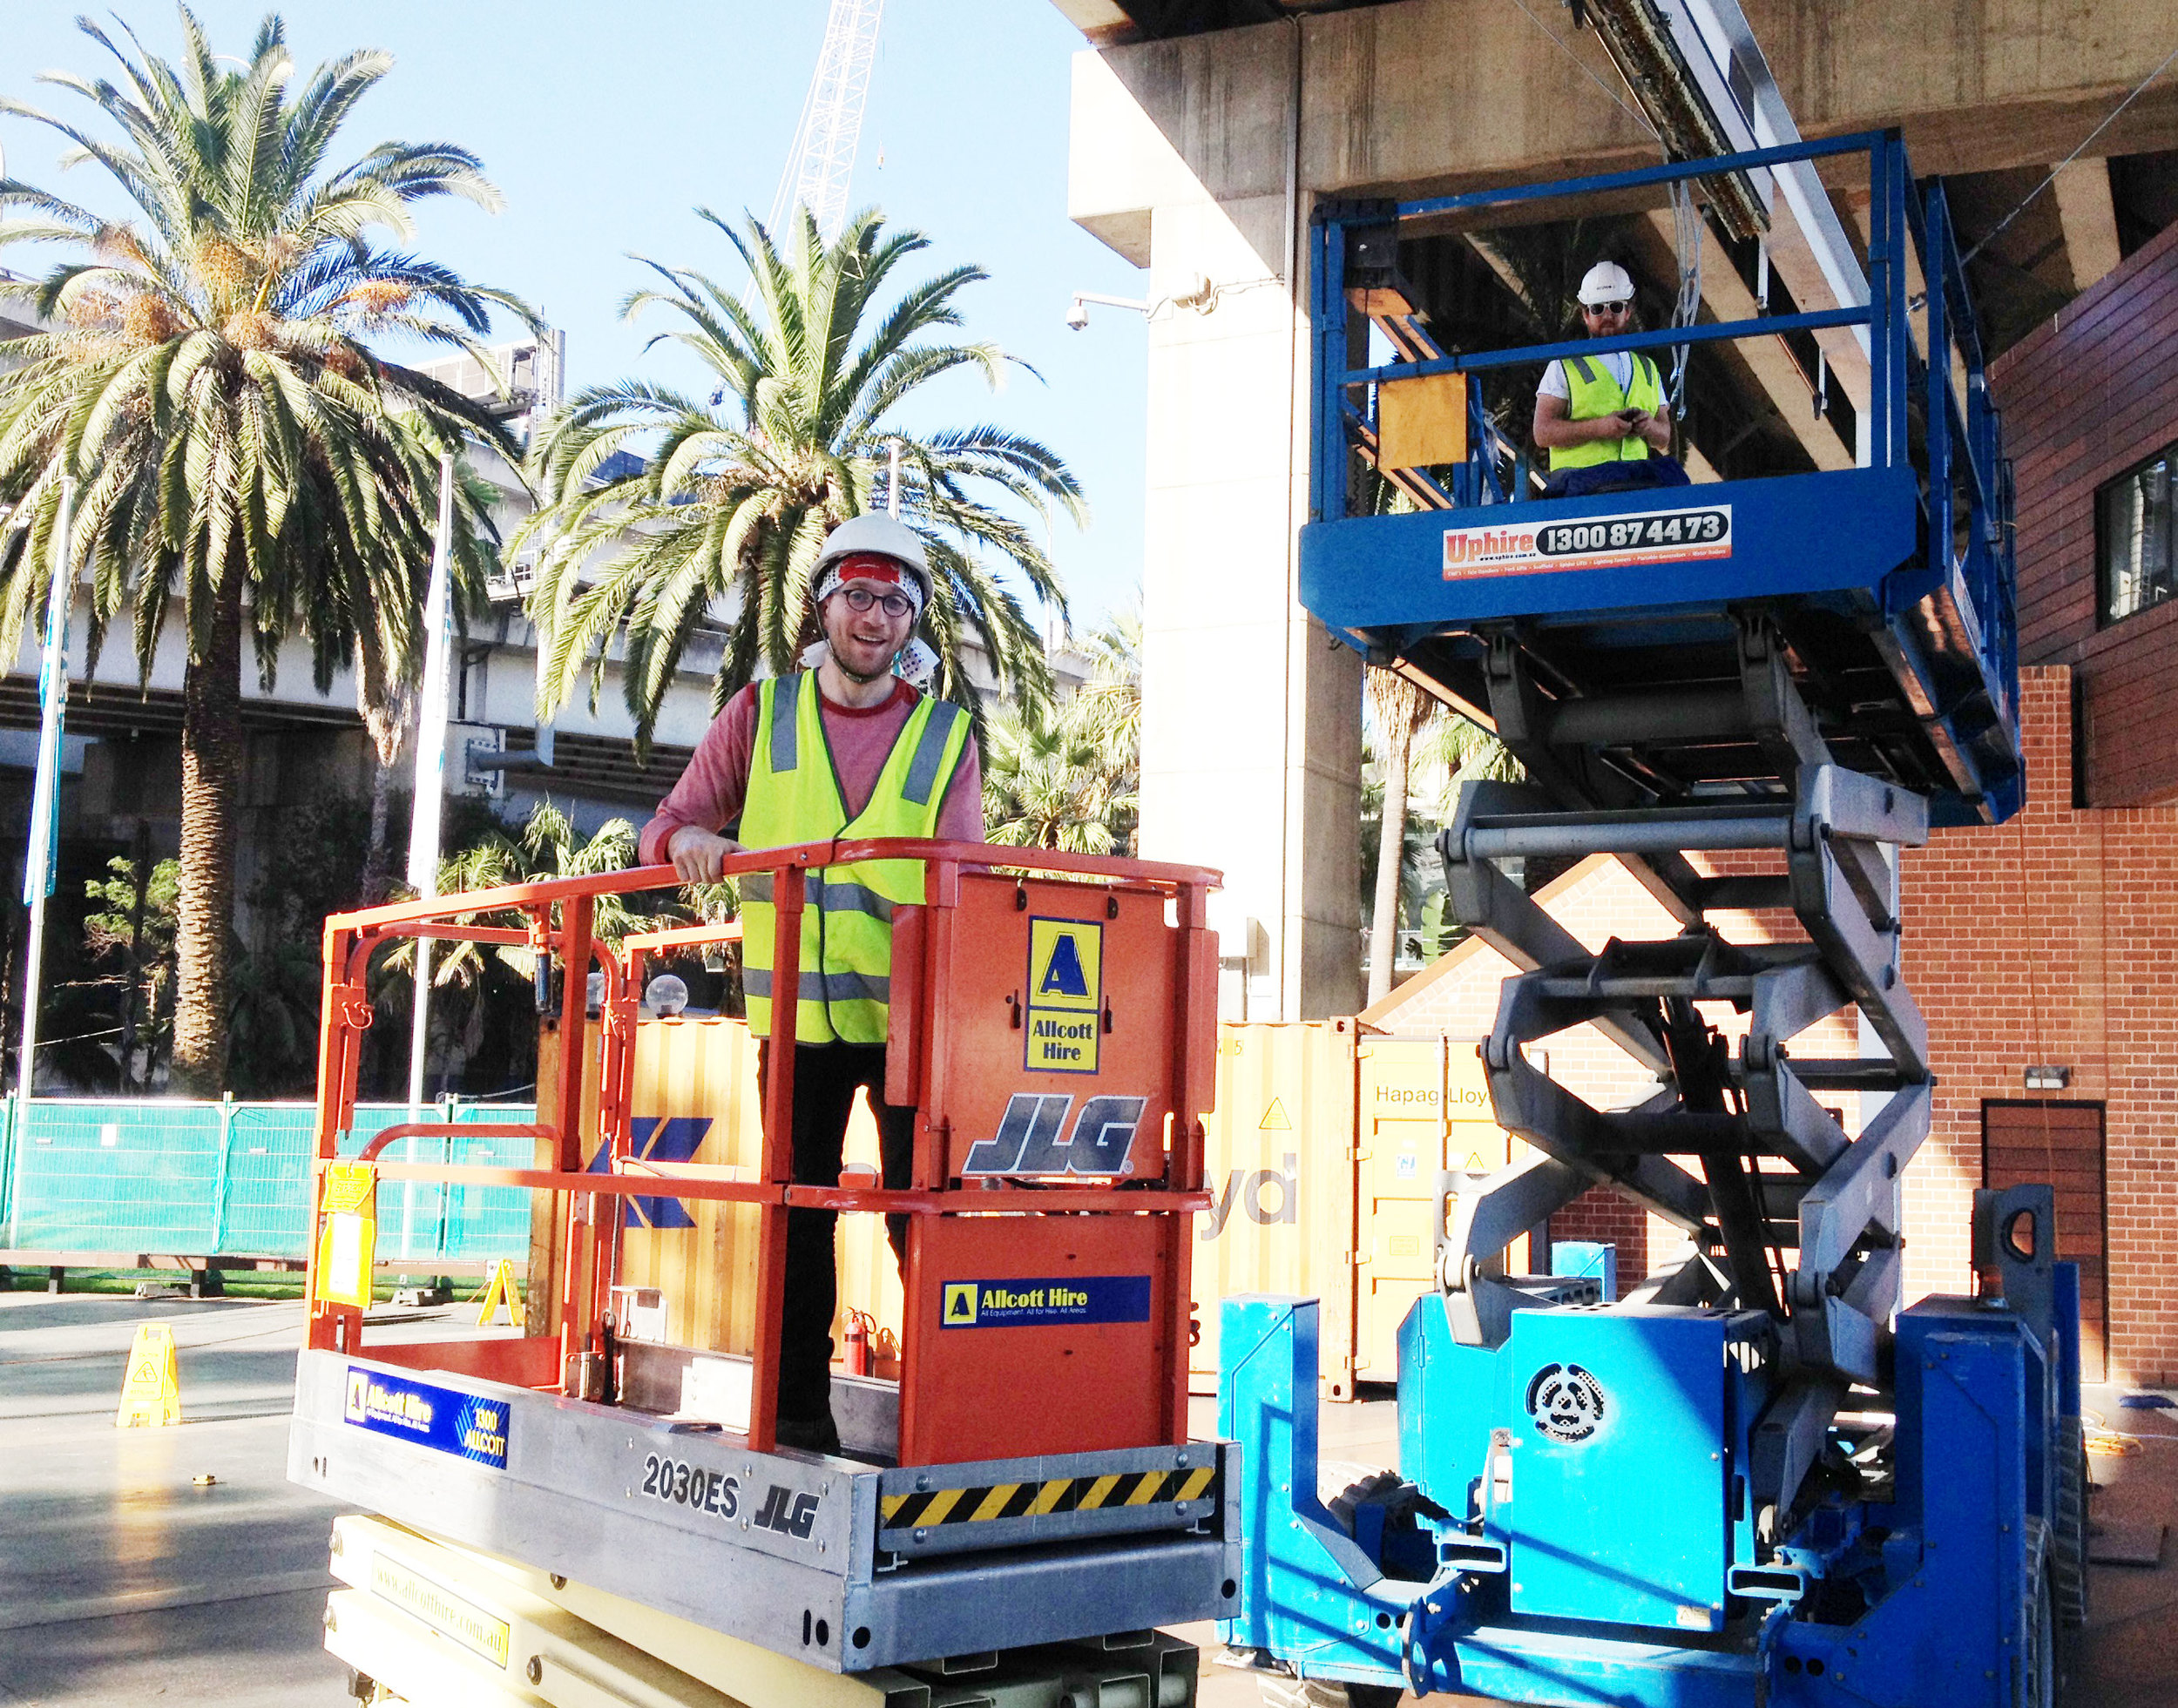 Ian and Mike on scissor lifts